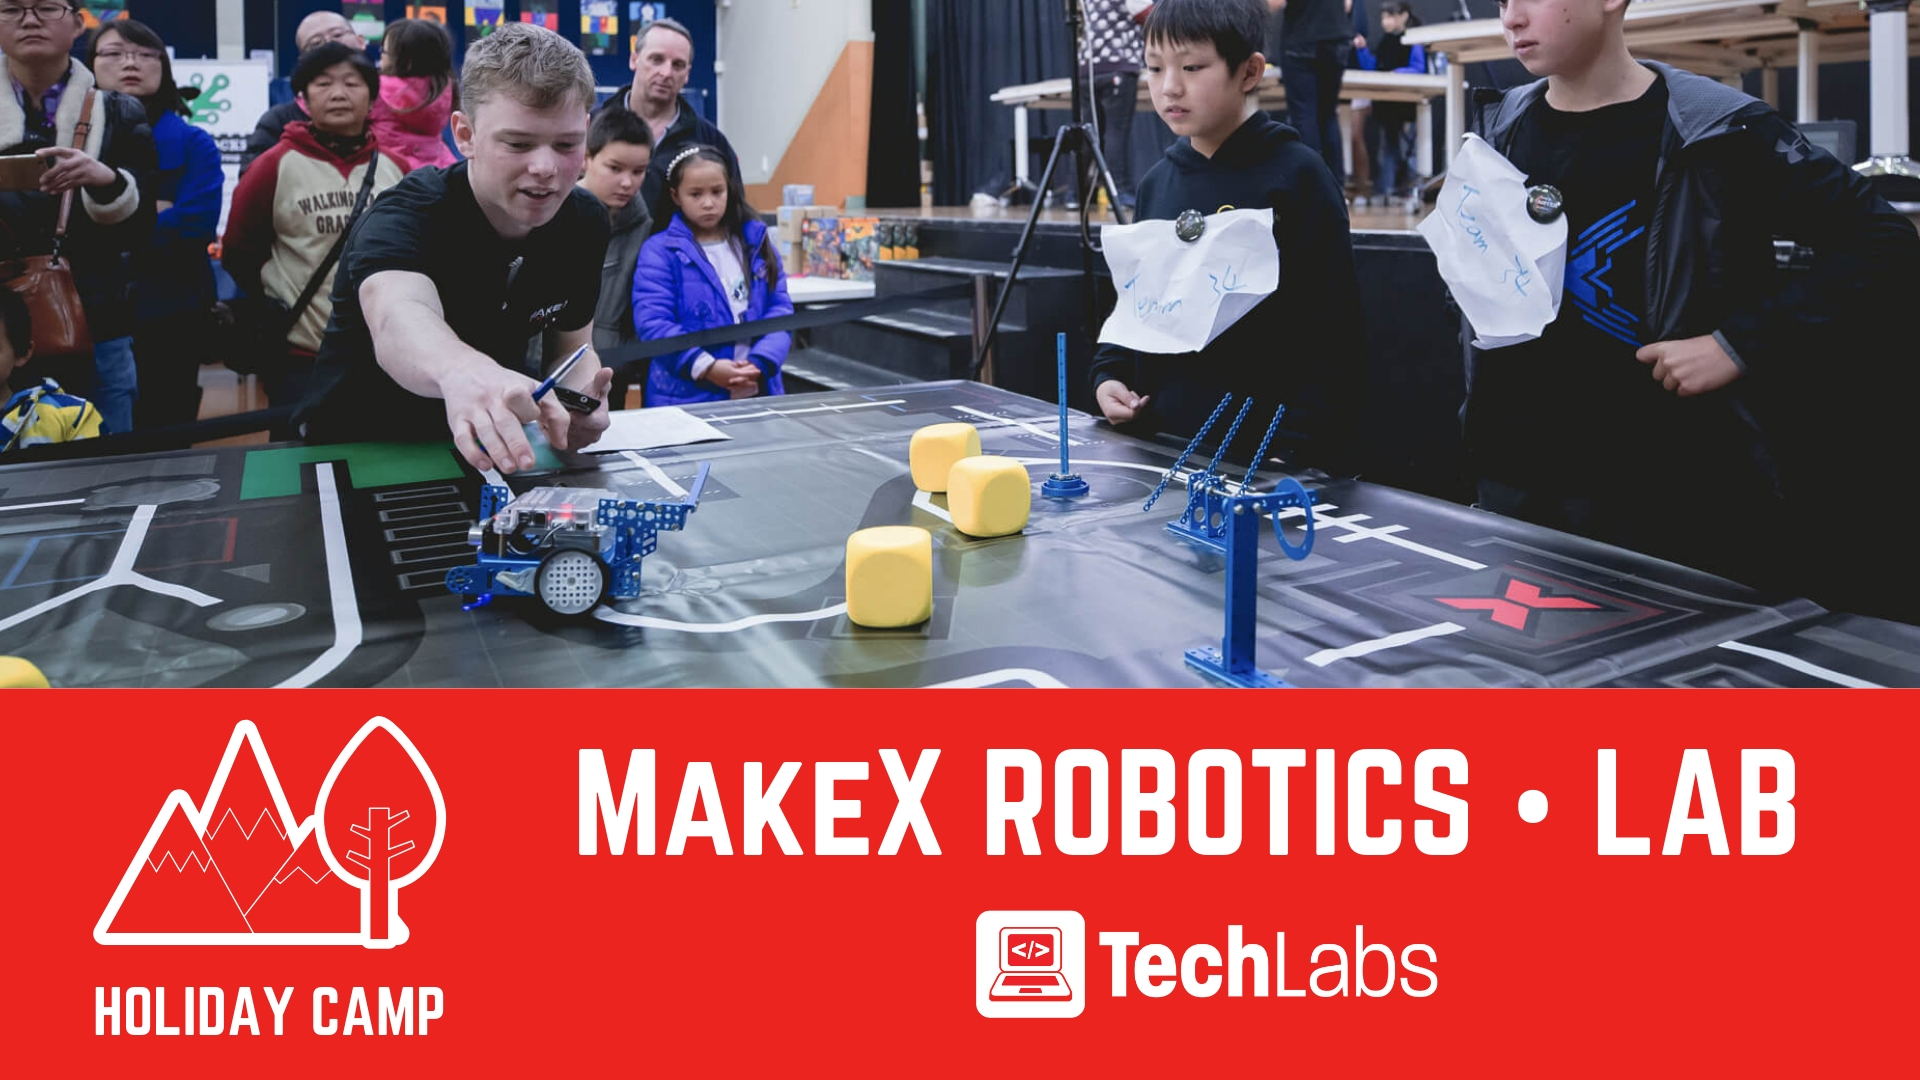 TechLabs | Camp | MakeX Robotics Lab